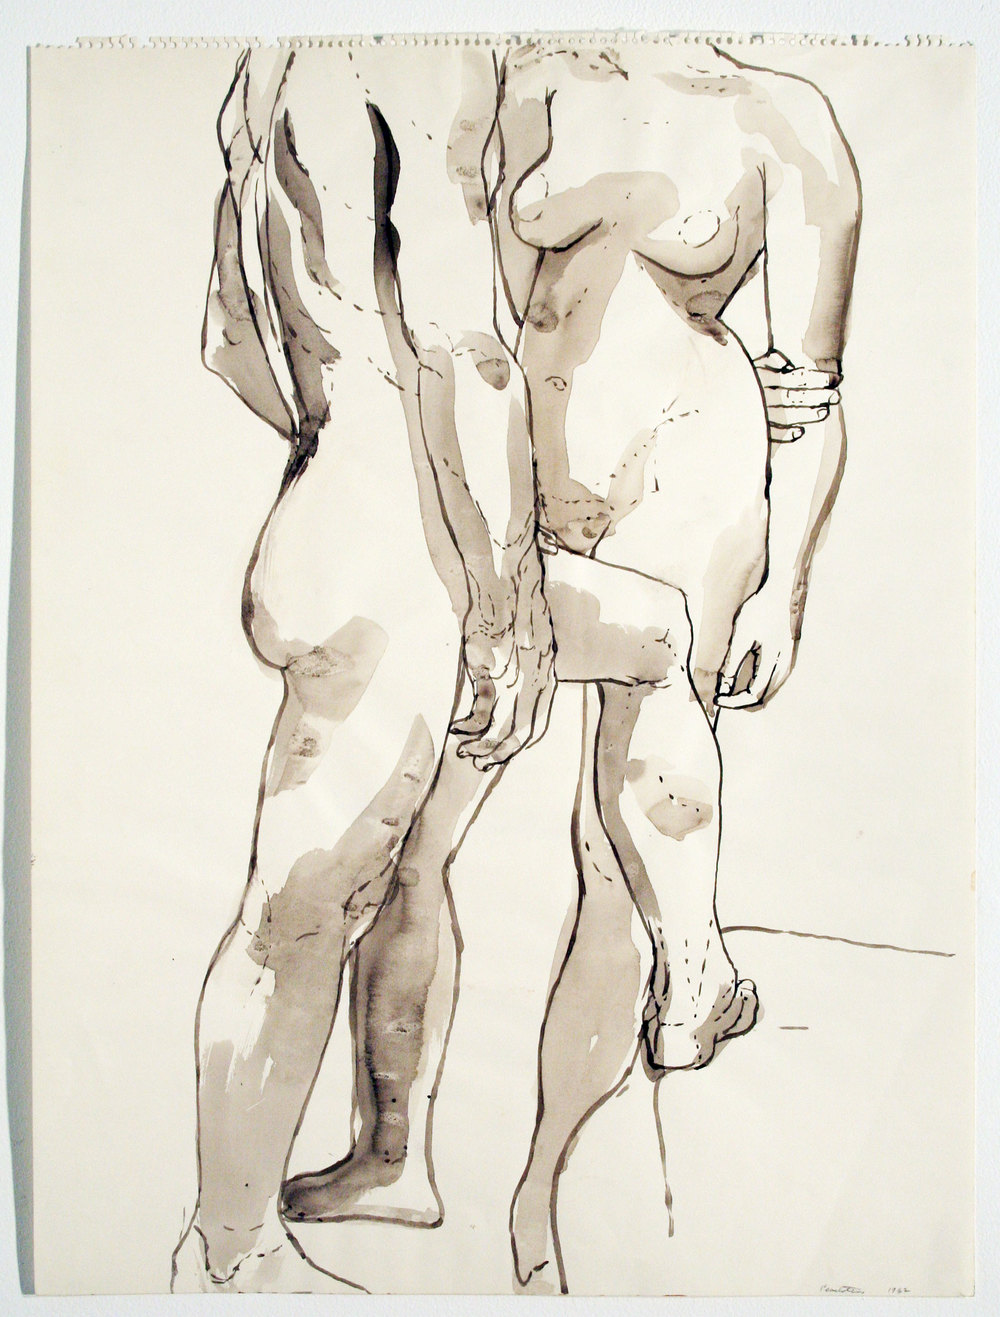 TWO STANDING MODELS , 1962 Watercolor on paper 23 3/4 x 18 inches